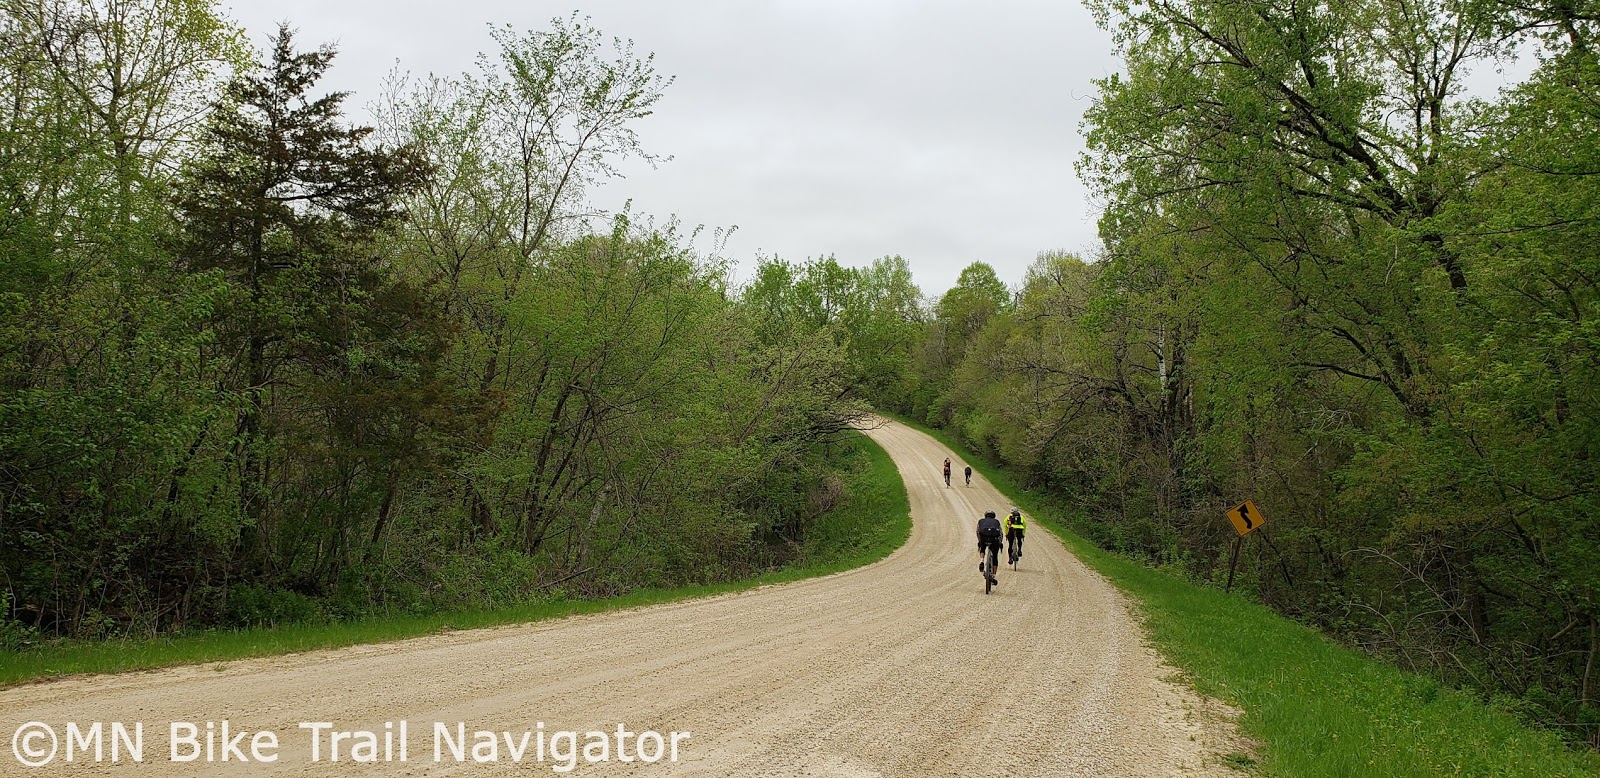 Mn Events 2020.Mn Bike Trail Navigator 2020 Minnesota Gravel Events